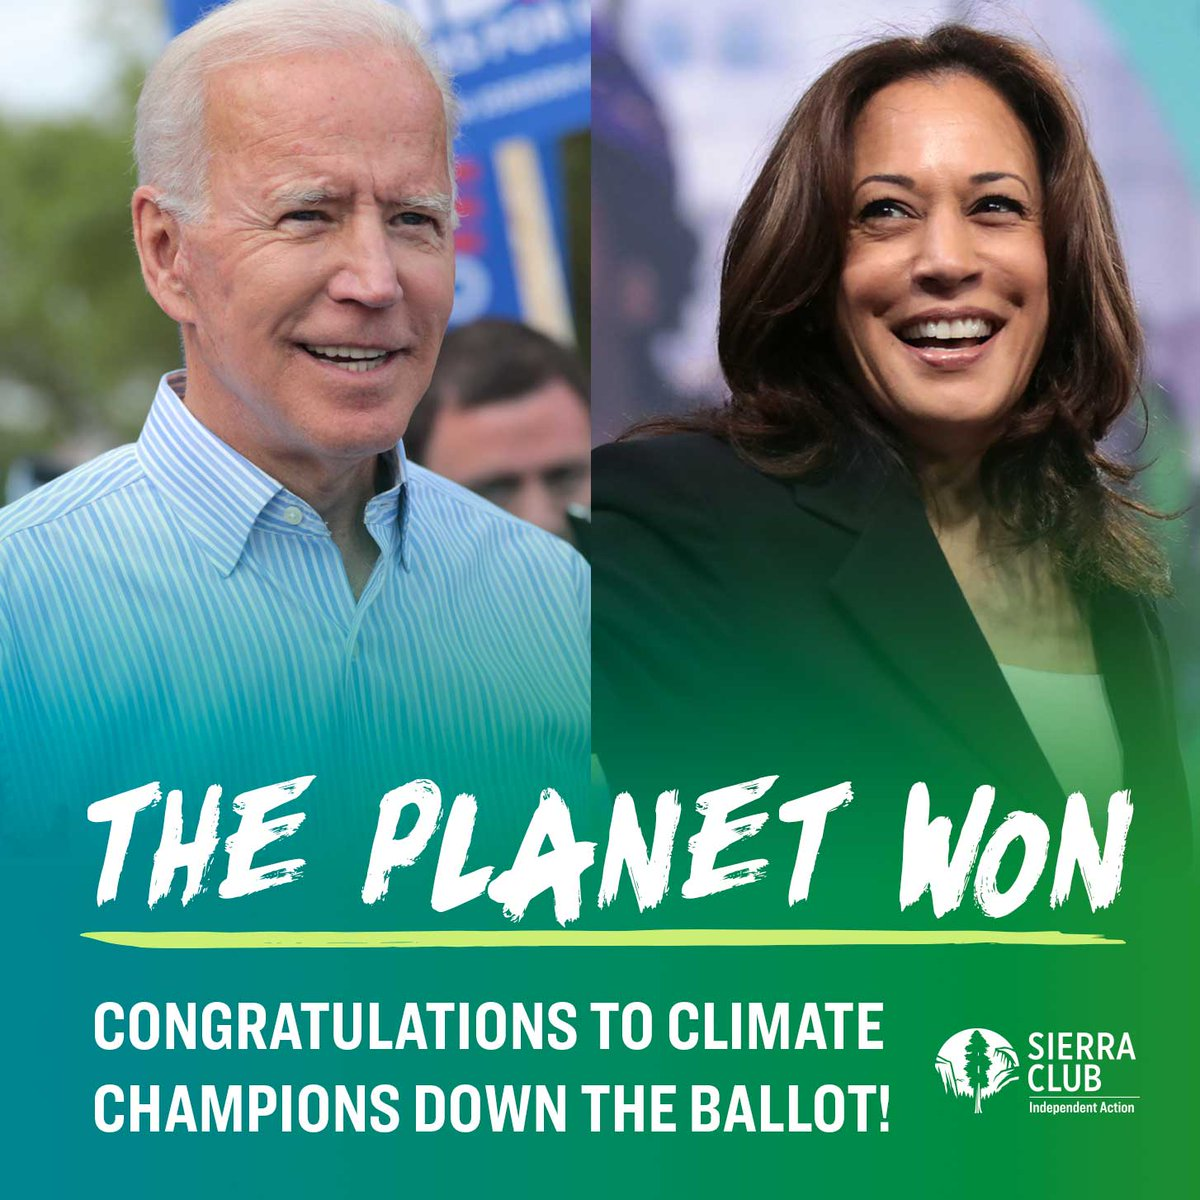 The planet won! Congratulations to Joe Biden and Kamala Harris. We are excited to continue the work to safeguard the health, safety and sustainability of our planet.  #changepoweredbypeople #peopleplanetpower